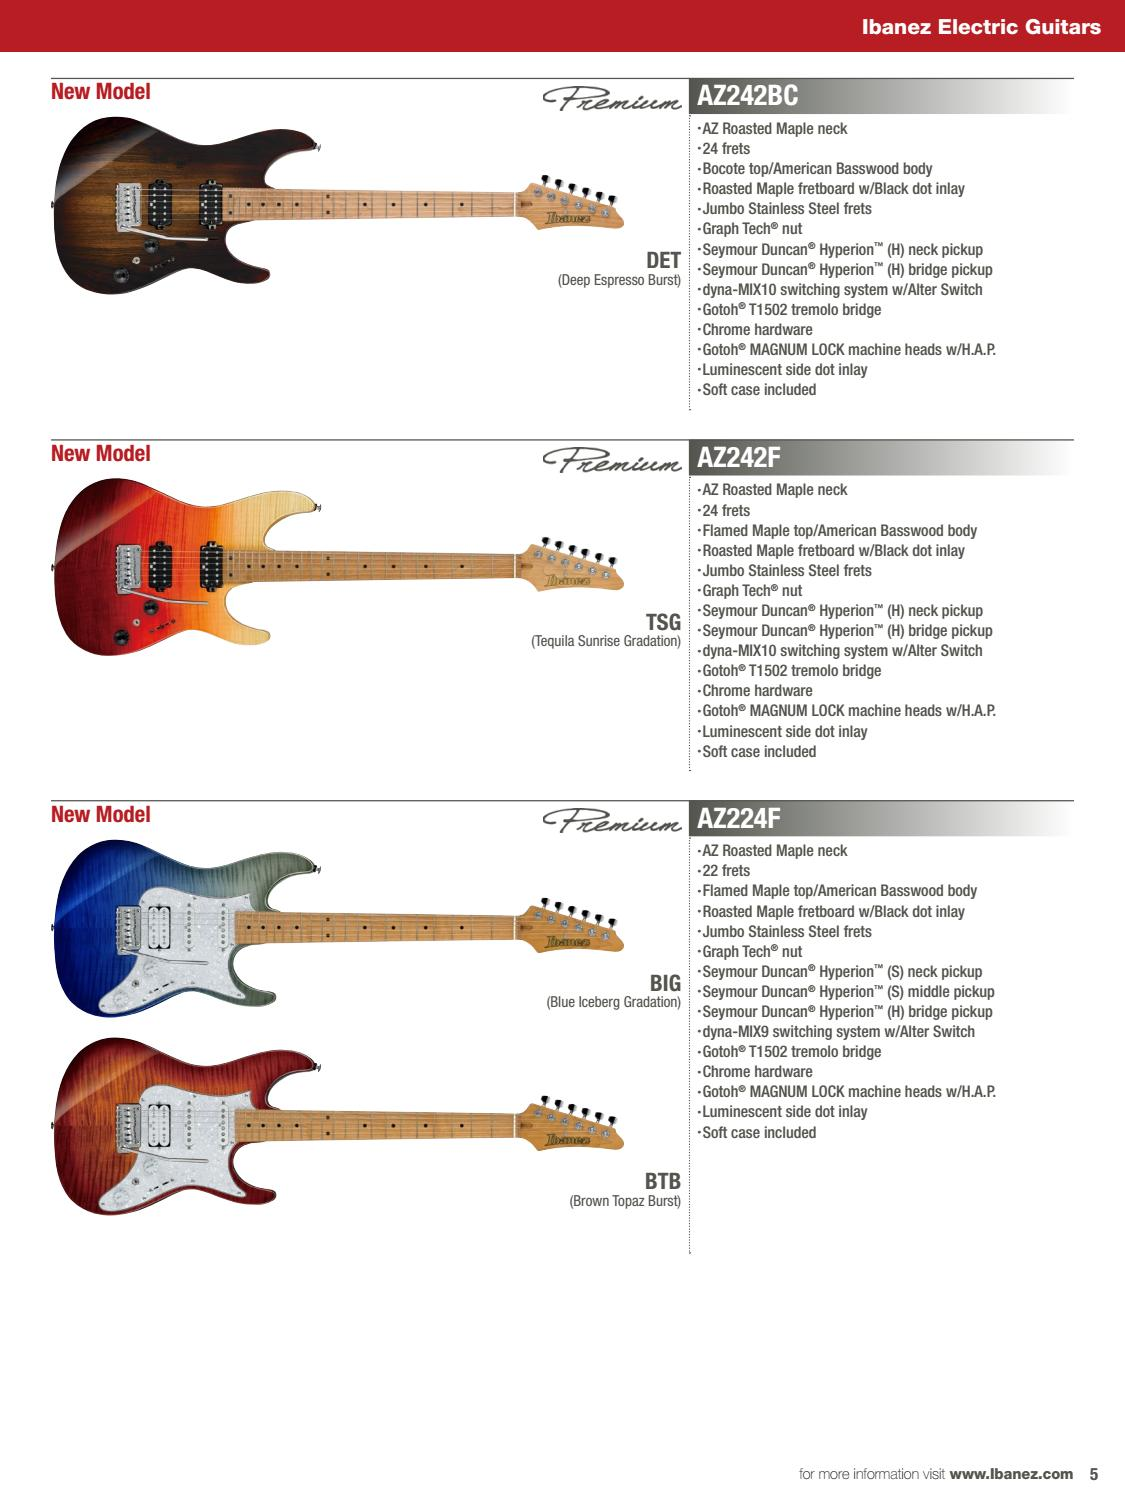 IBANEZ 2018 FULL LINE CATALOG by Ibanez Germany - issuu